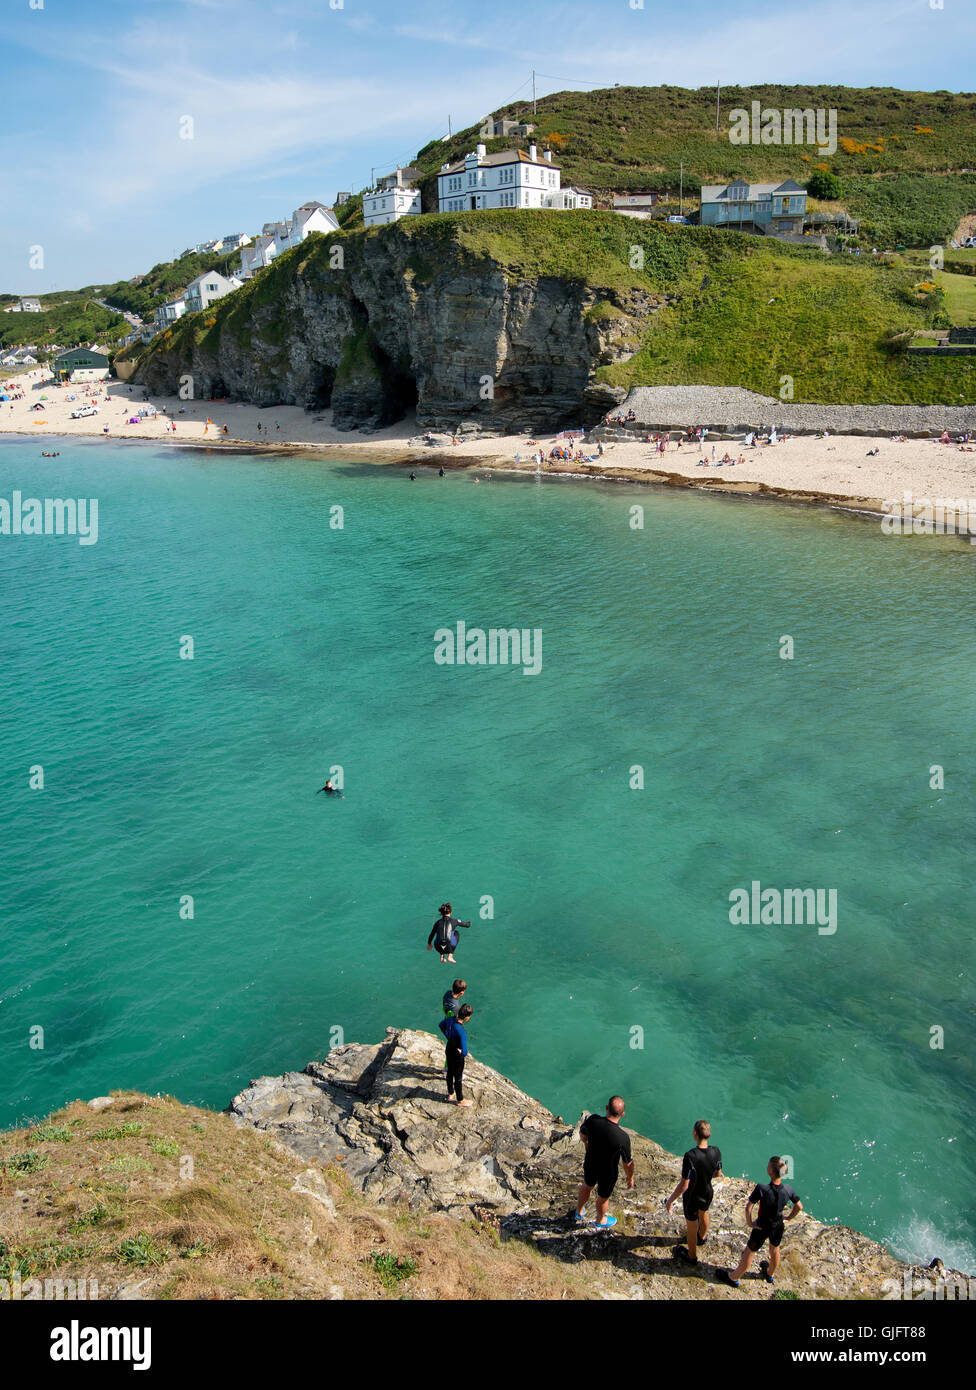 Children jumping in to the sea at high tide in Portreath, Cornwall England UK. - Stock Image